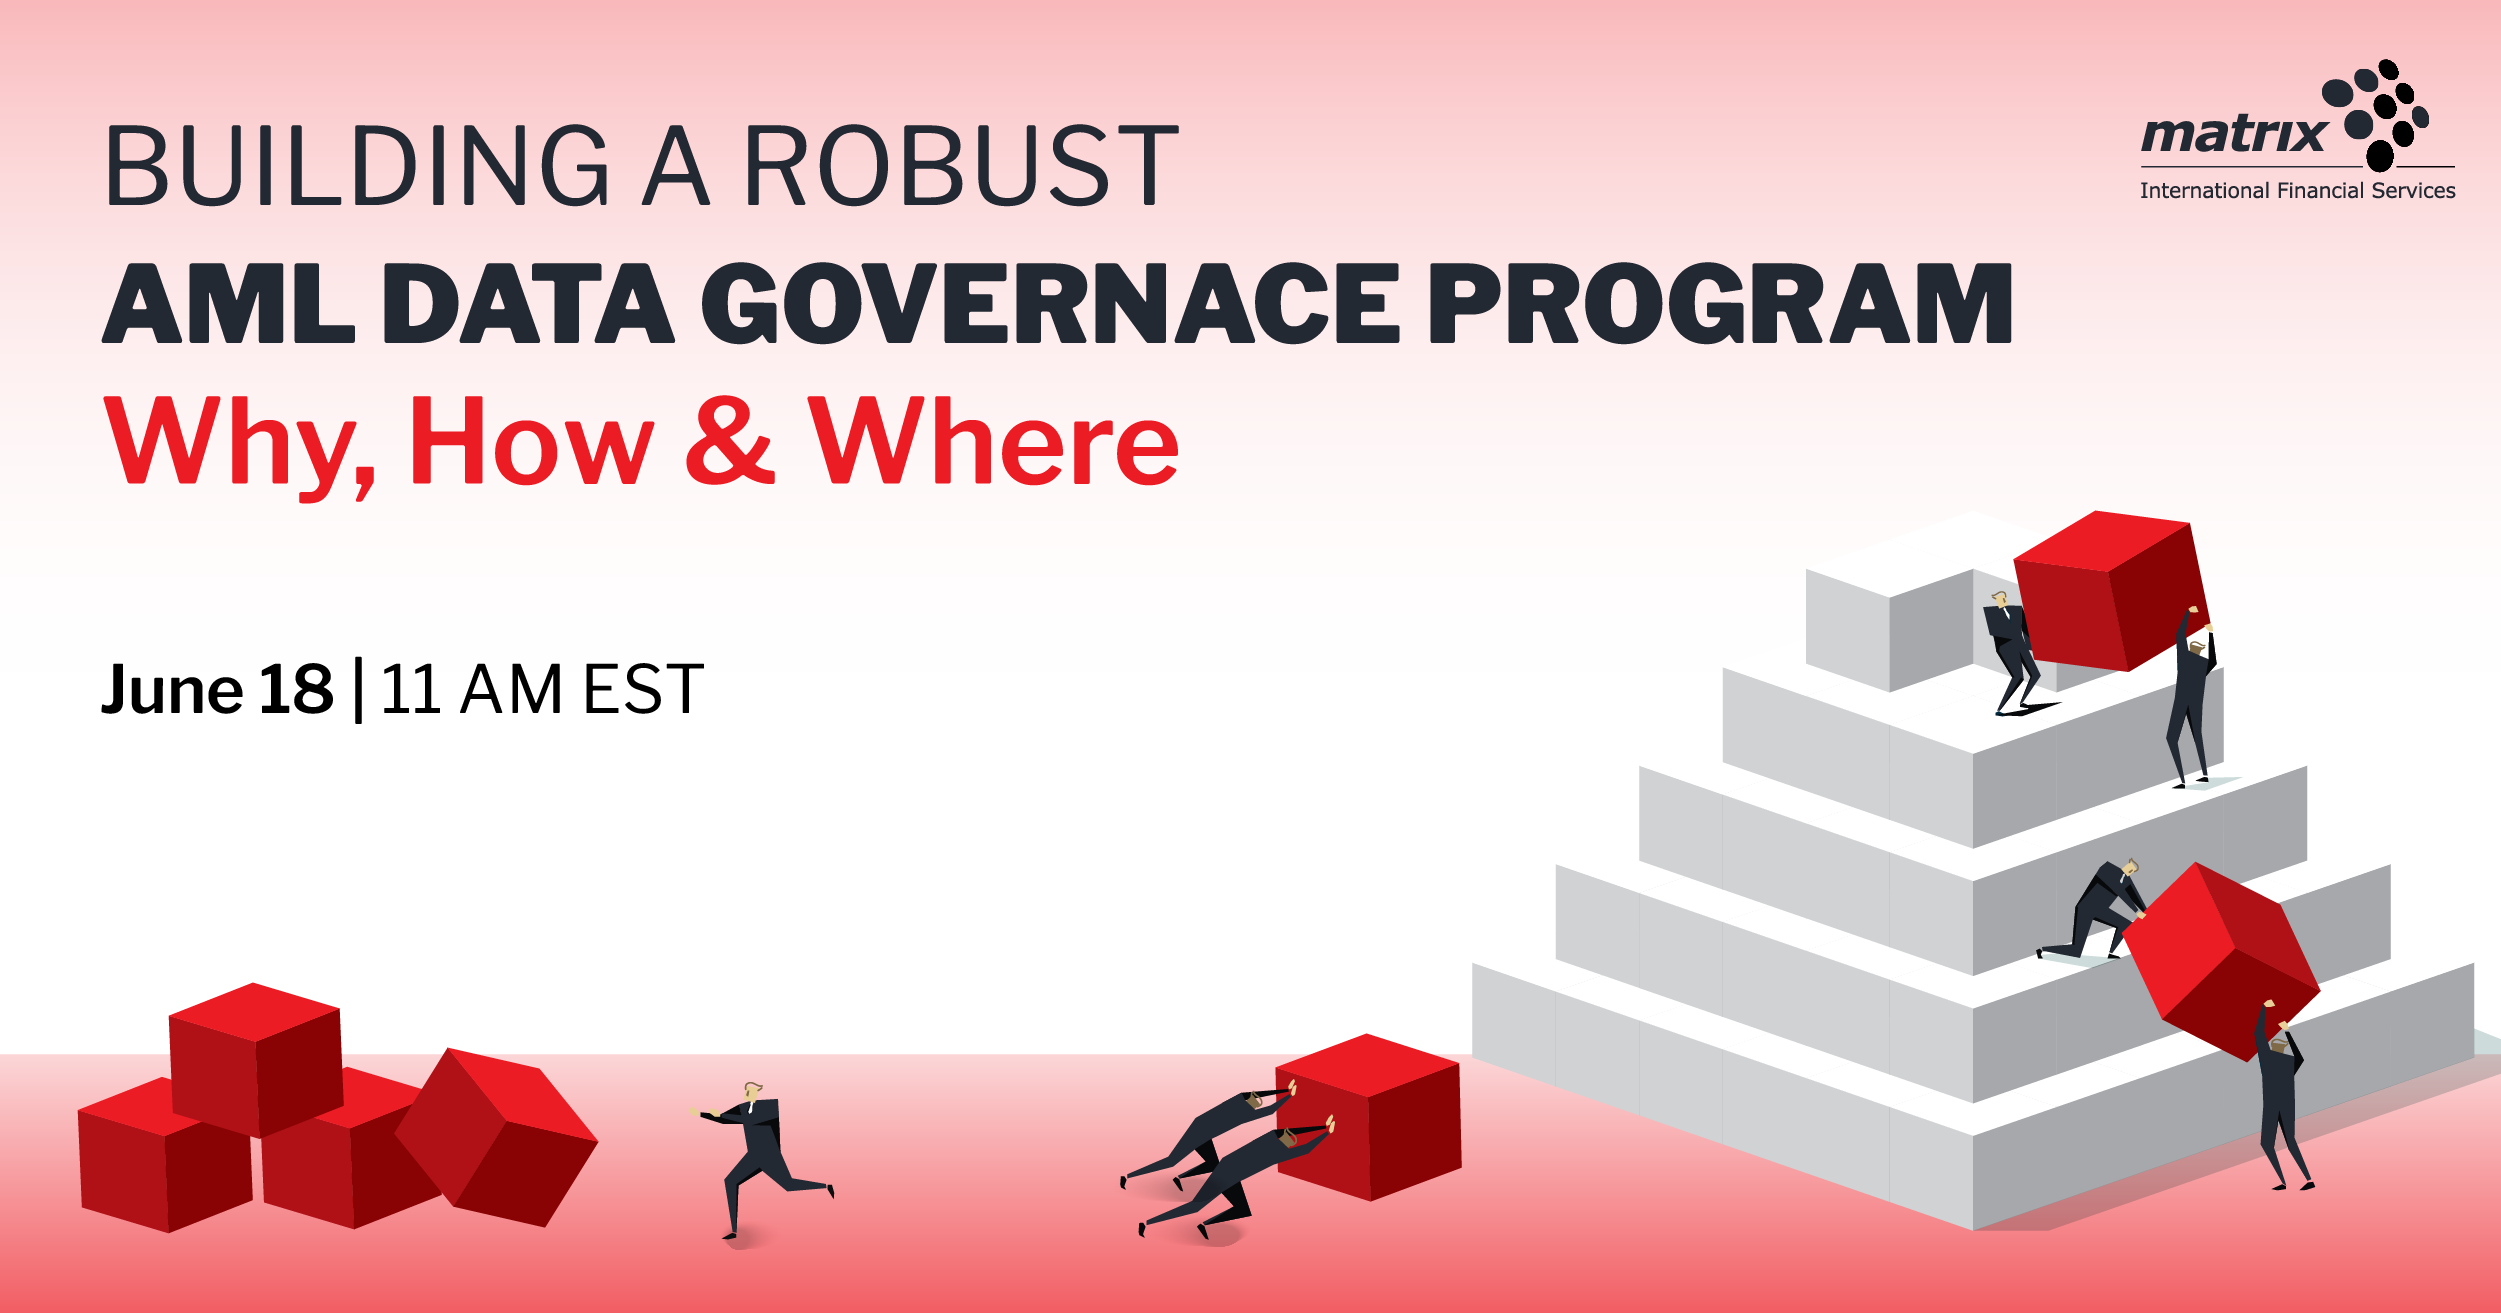 Building a Robust AML Data Governance Program – Why, How & Where